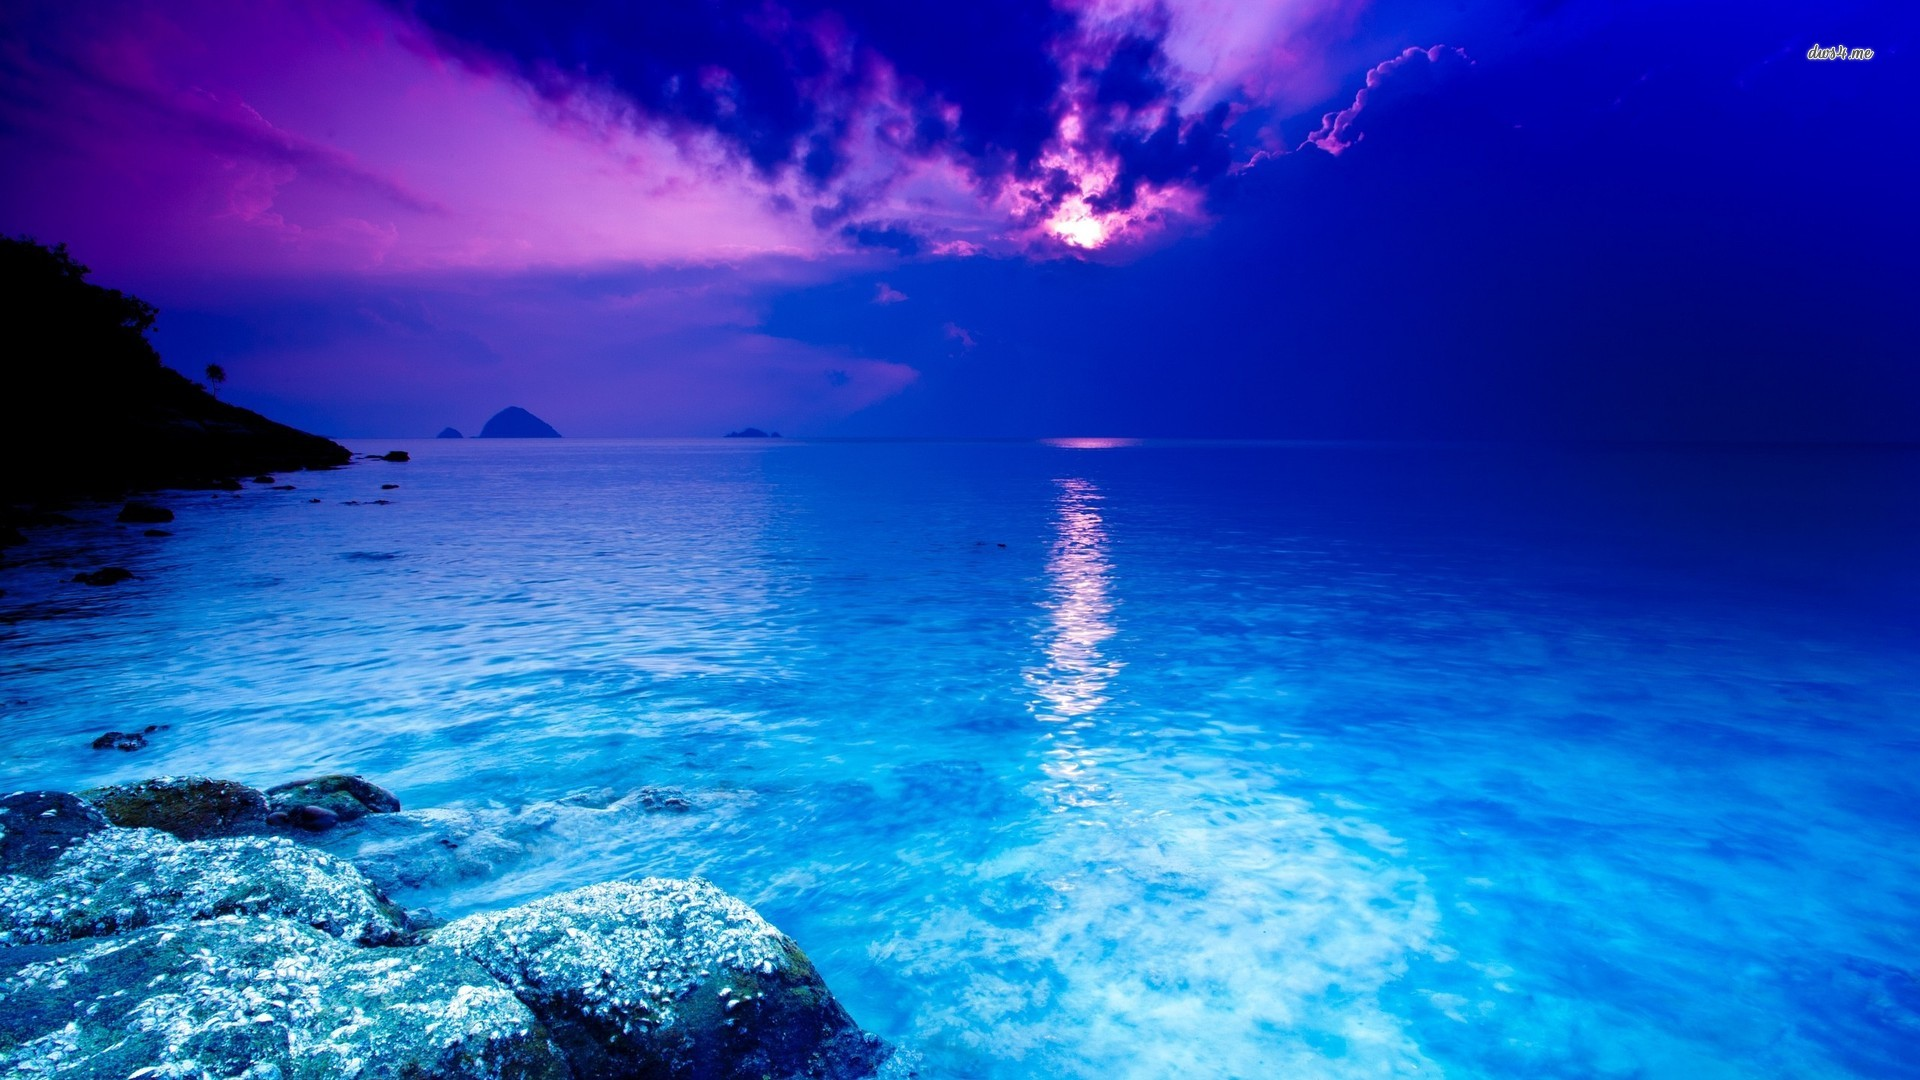 Blue ocean wallpaper - Beach wallpapers - #14710